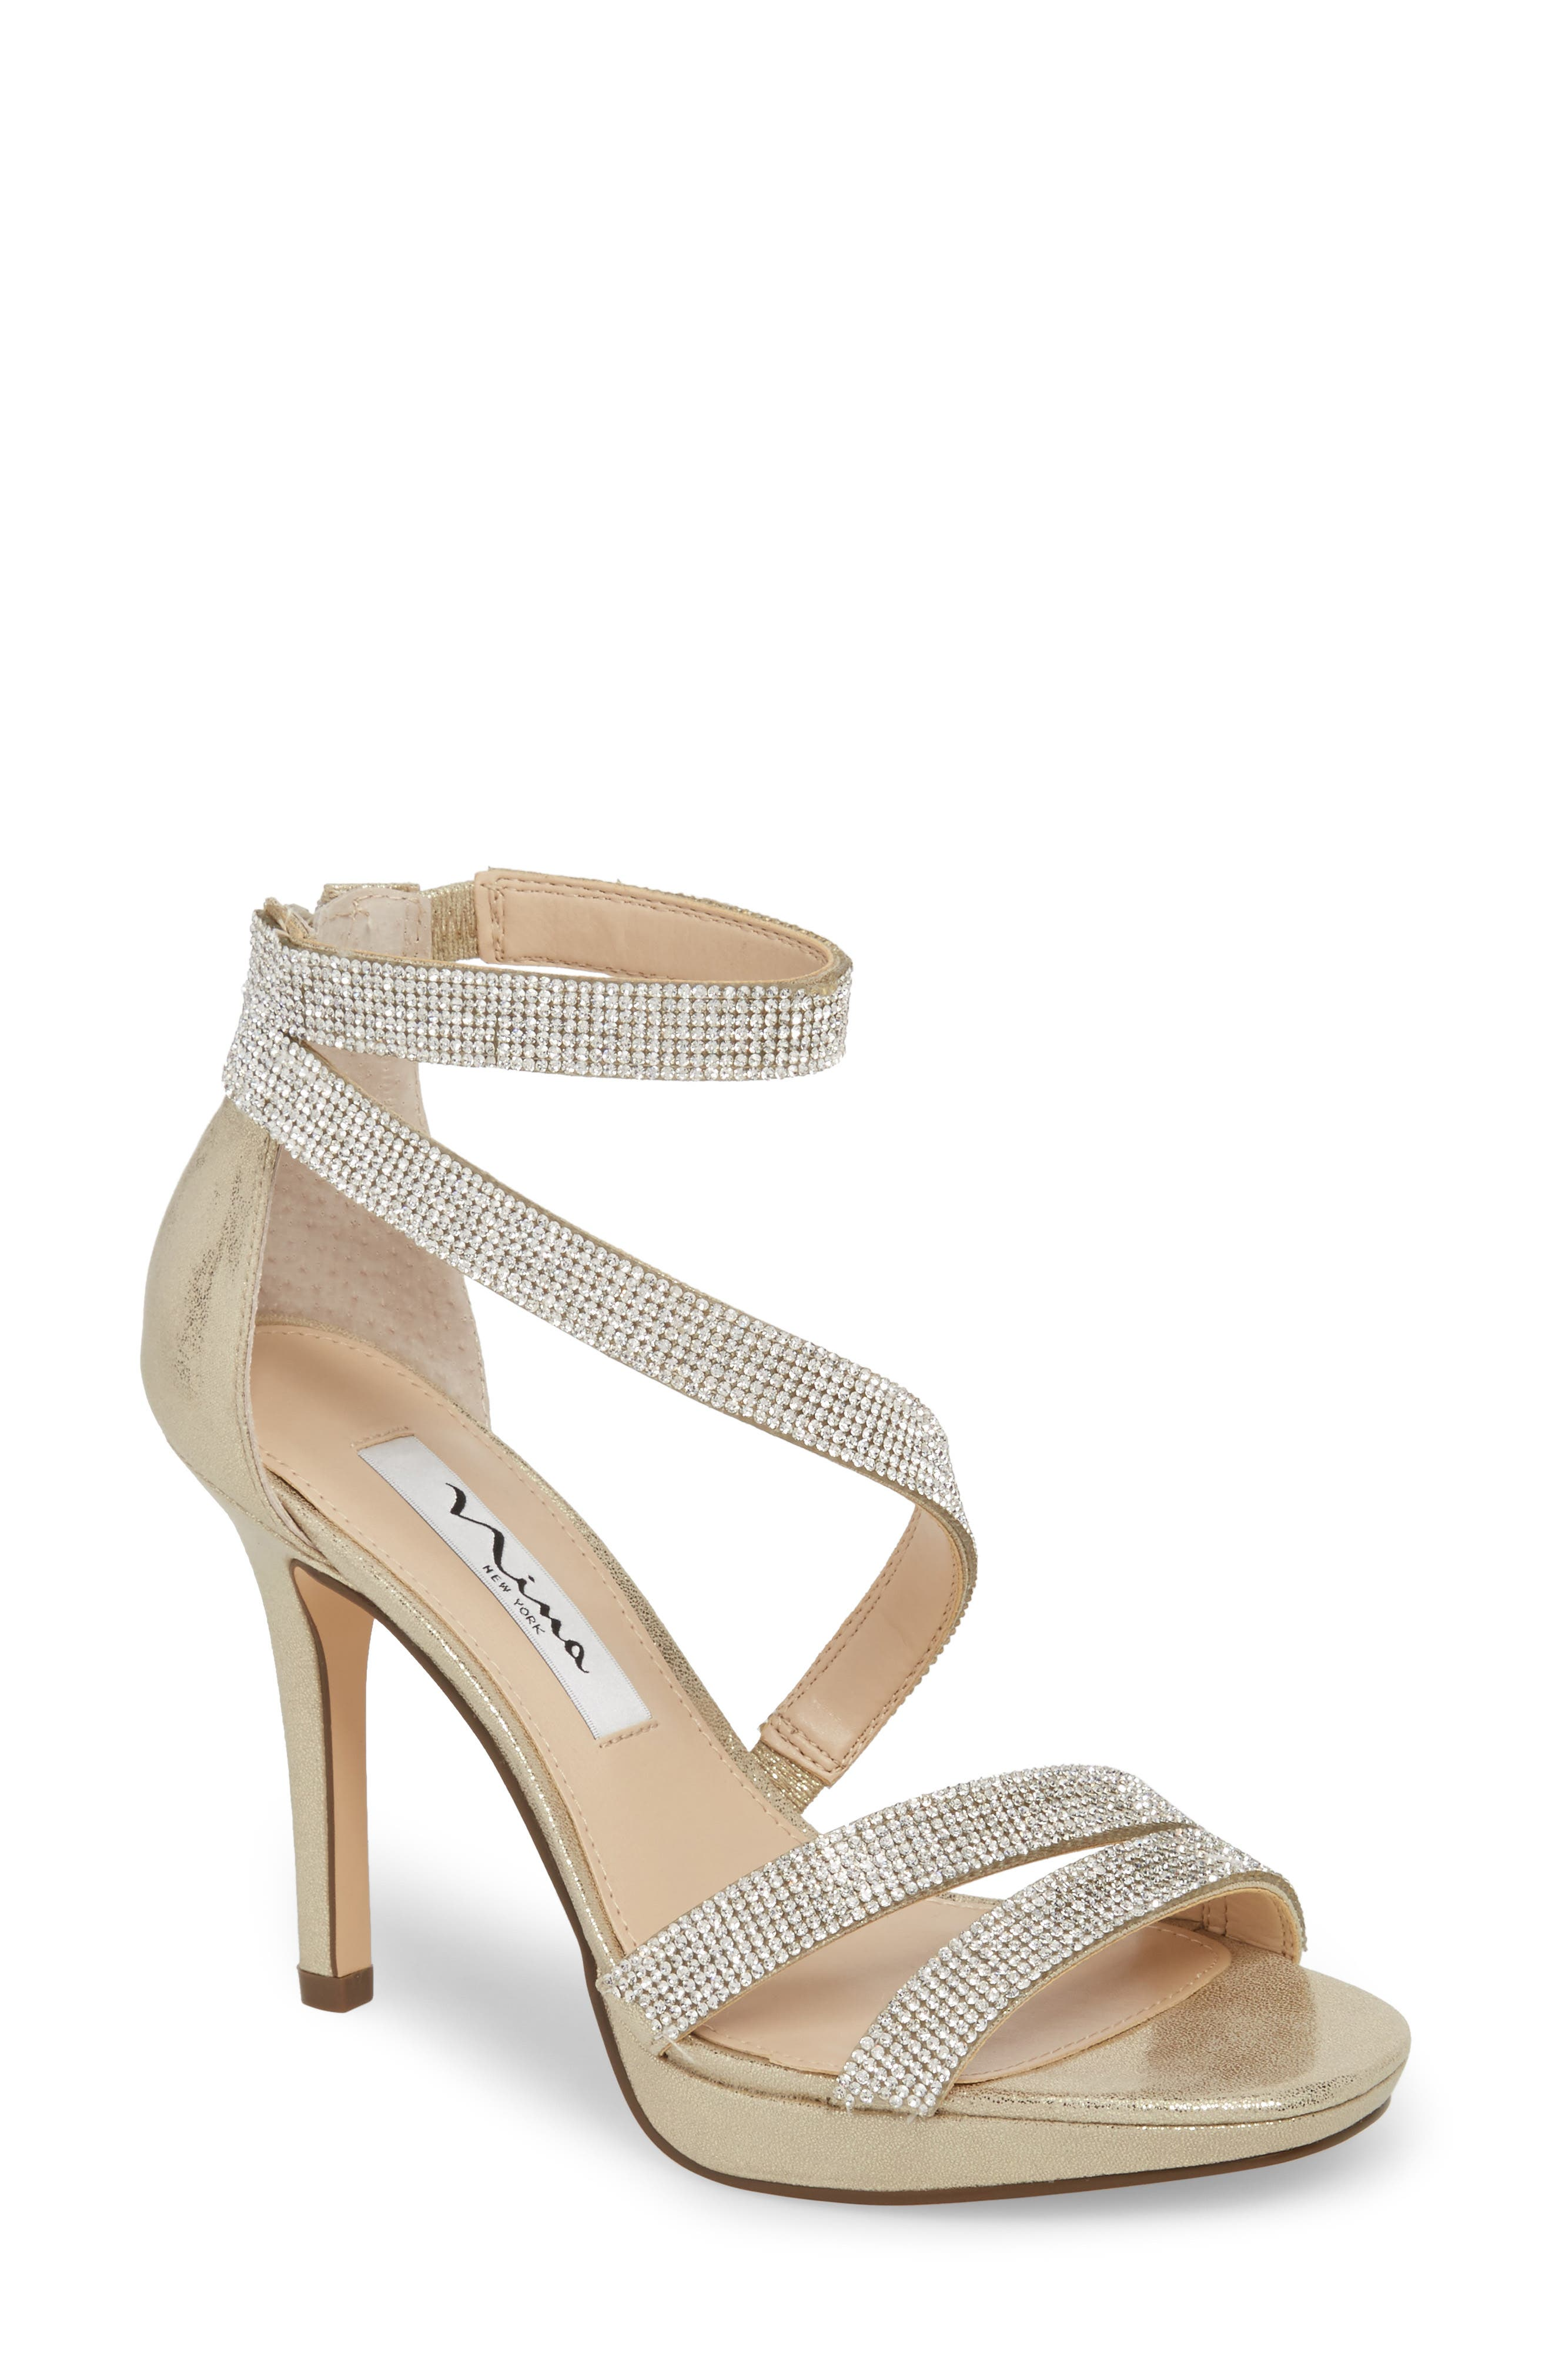 Alissa Sandal,                         Main,                         color, GOLD FABRIC